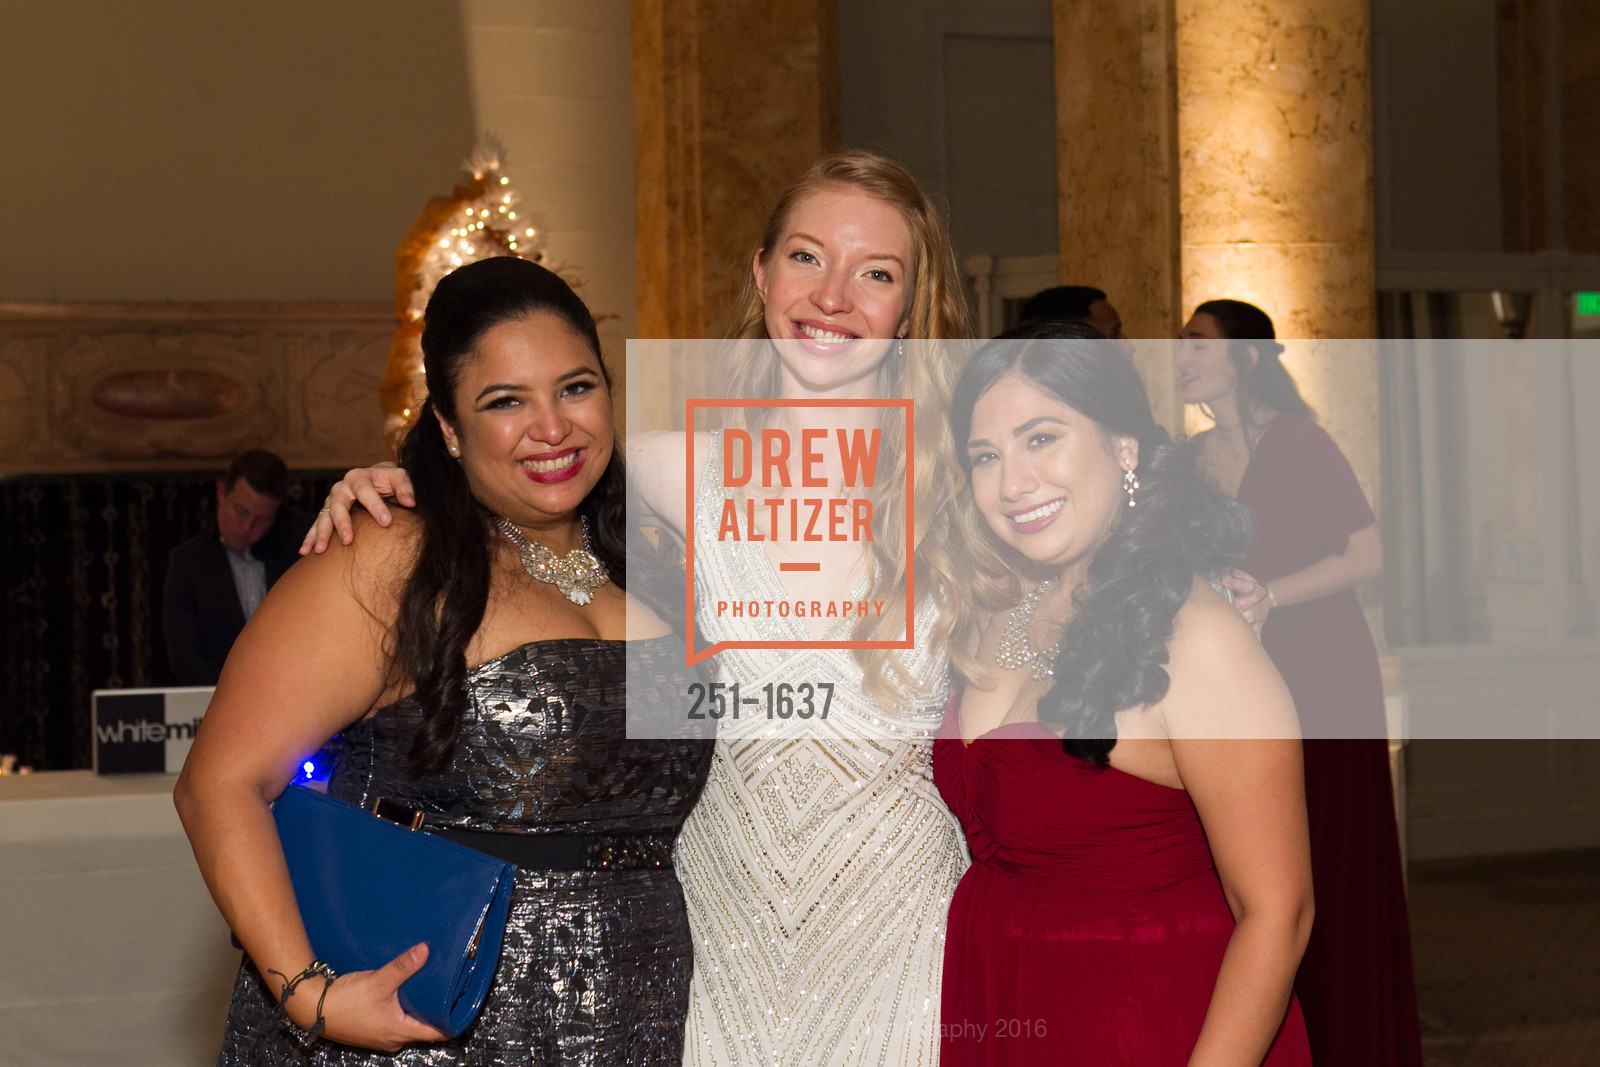 Deyanira Medina, Claire Callahan, Natalie Bueo, Spinsters Holiday event, Metropolitan Club. 640 Sutter St, San Francisco, CA 94102, December 10th, 2016